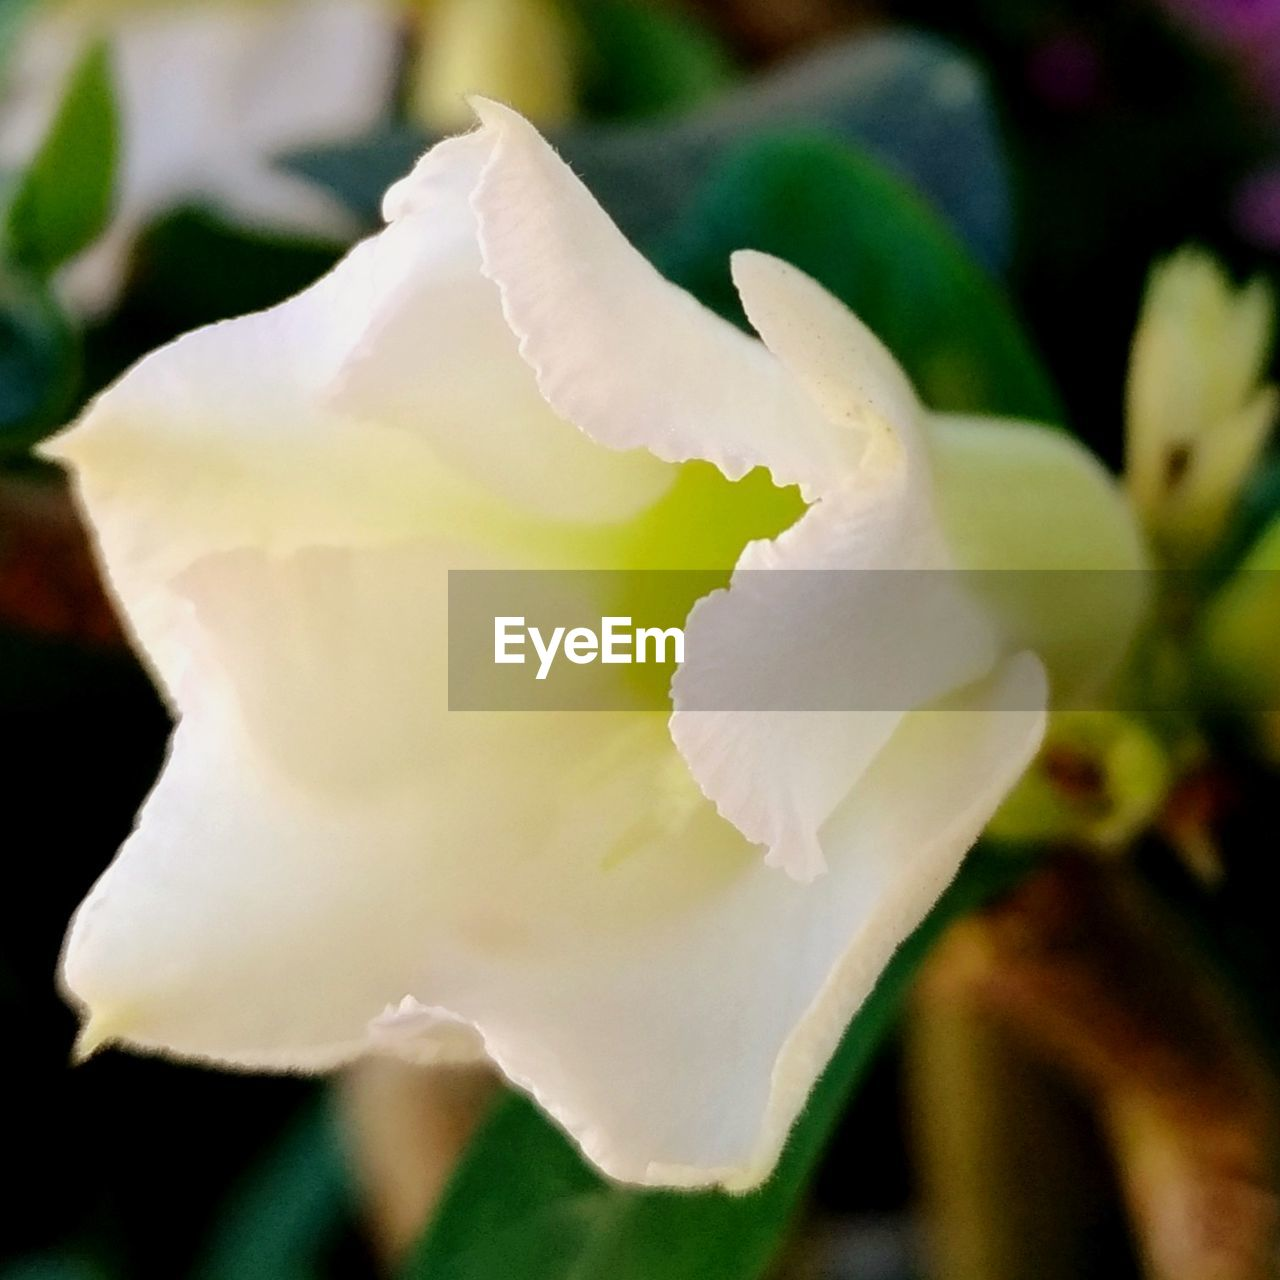 flowering plant, flower, beauty in nature, petal, close-up, vulnerability, fragility, plant, growth, freshness, inflorescence, flower head, white color, selective focus, nature, no people, day, rose, focus on foreground, outdoors, springtime